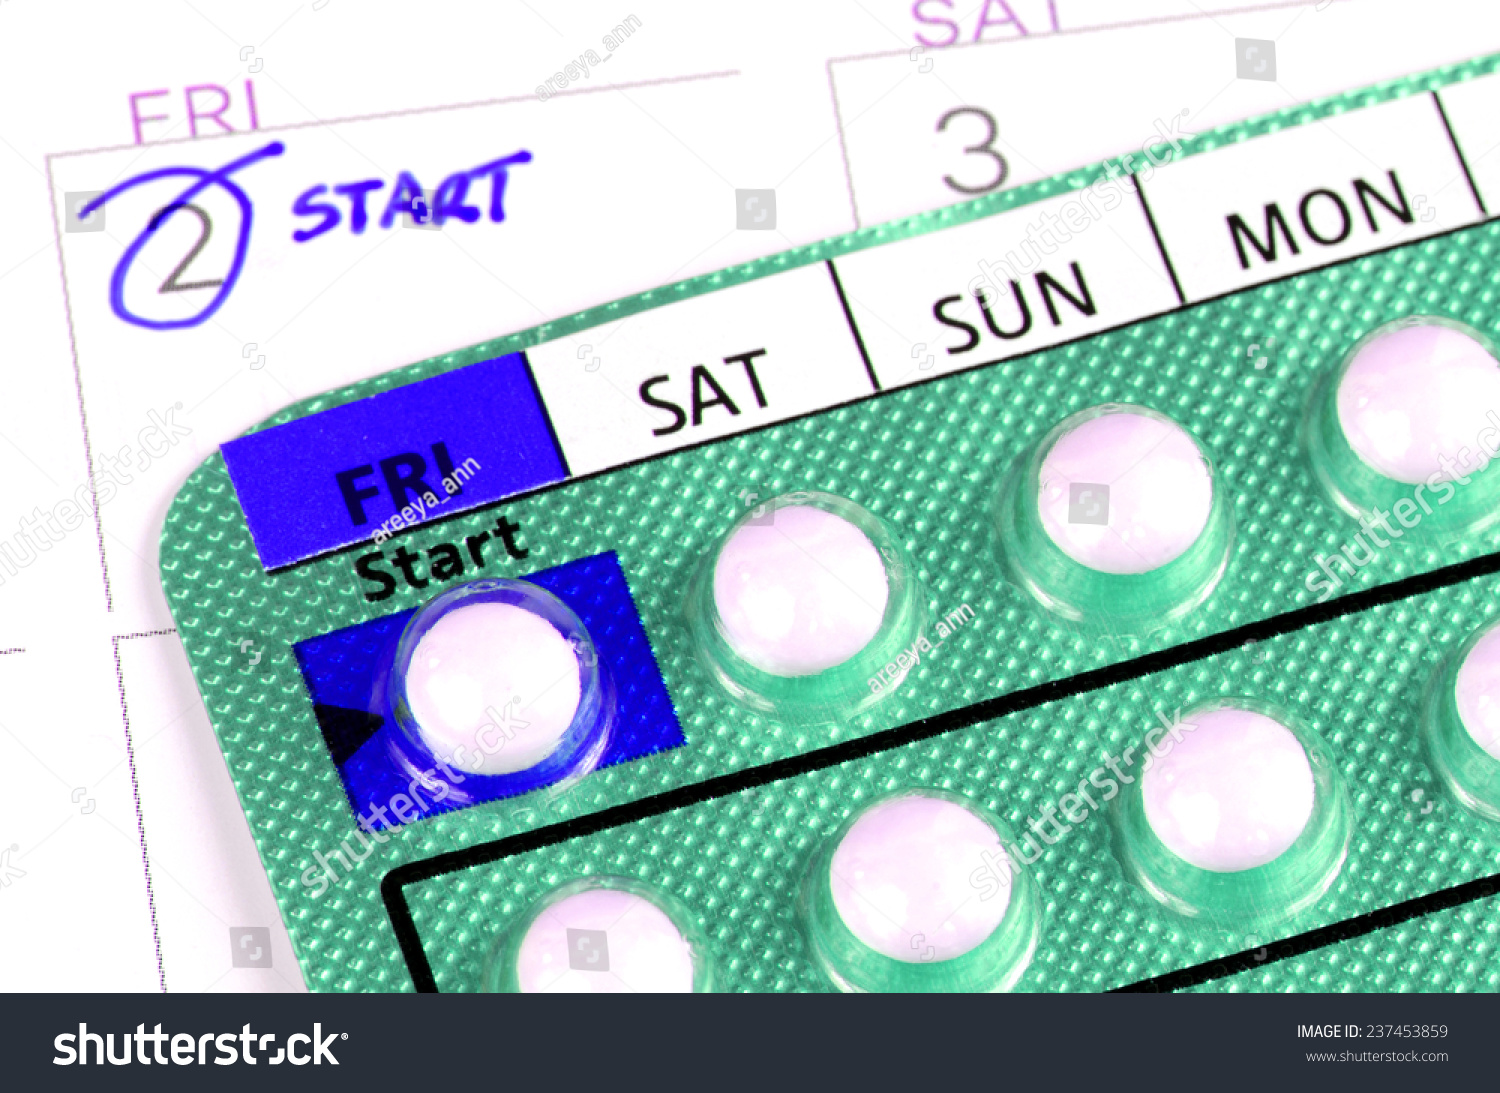 how to stop taking contraceptive pills